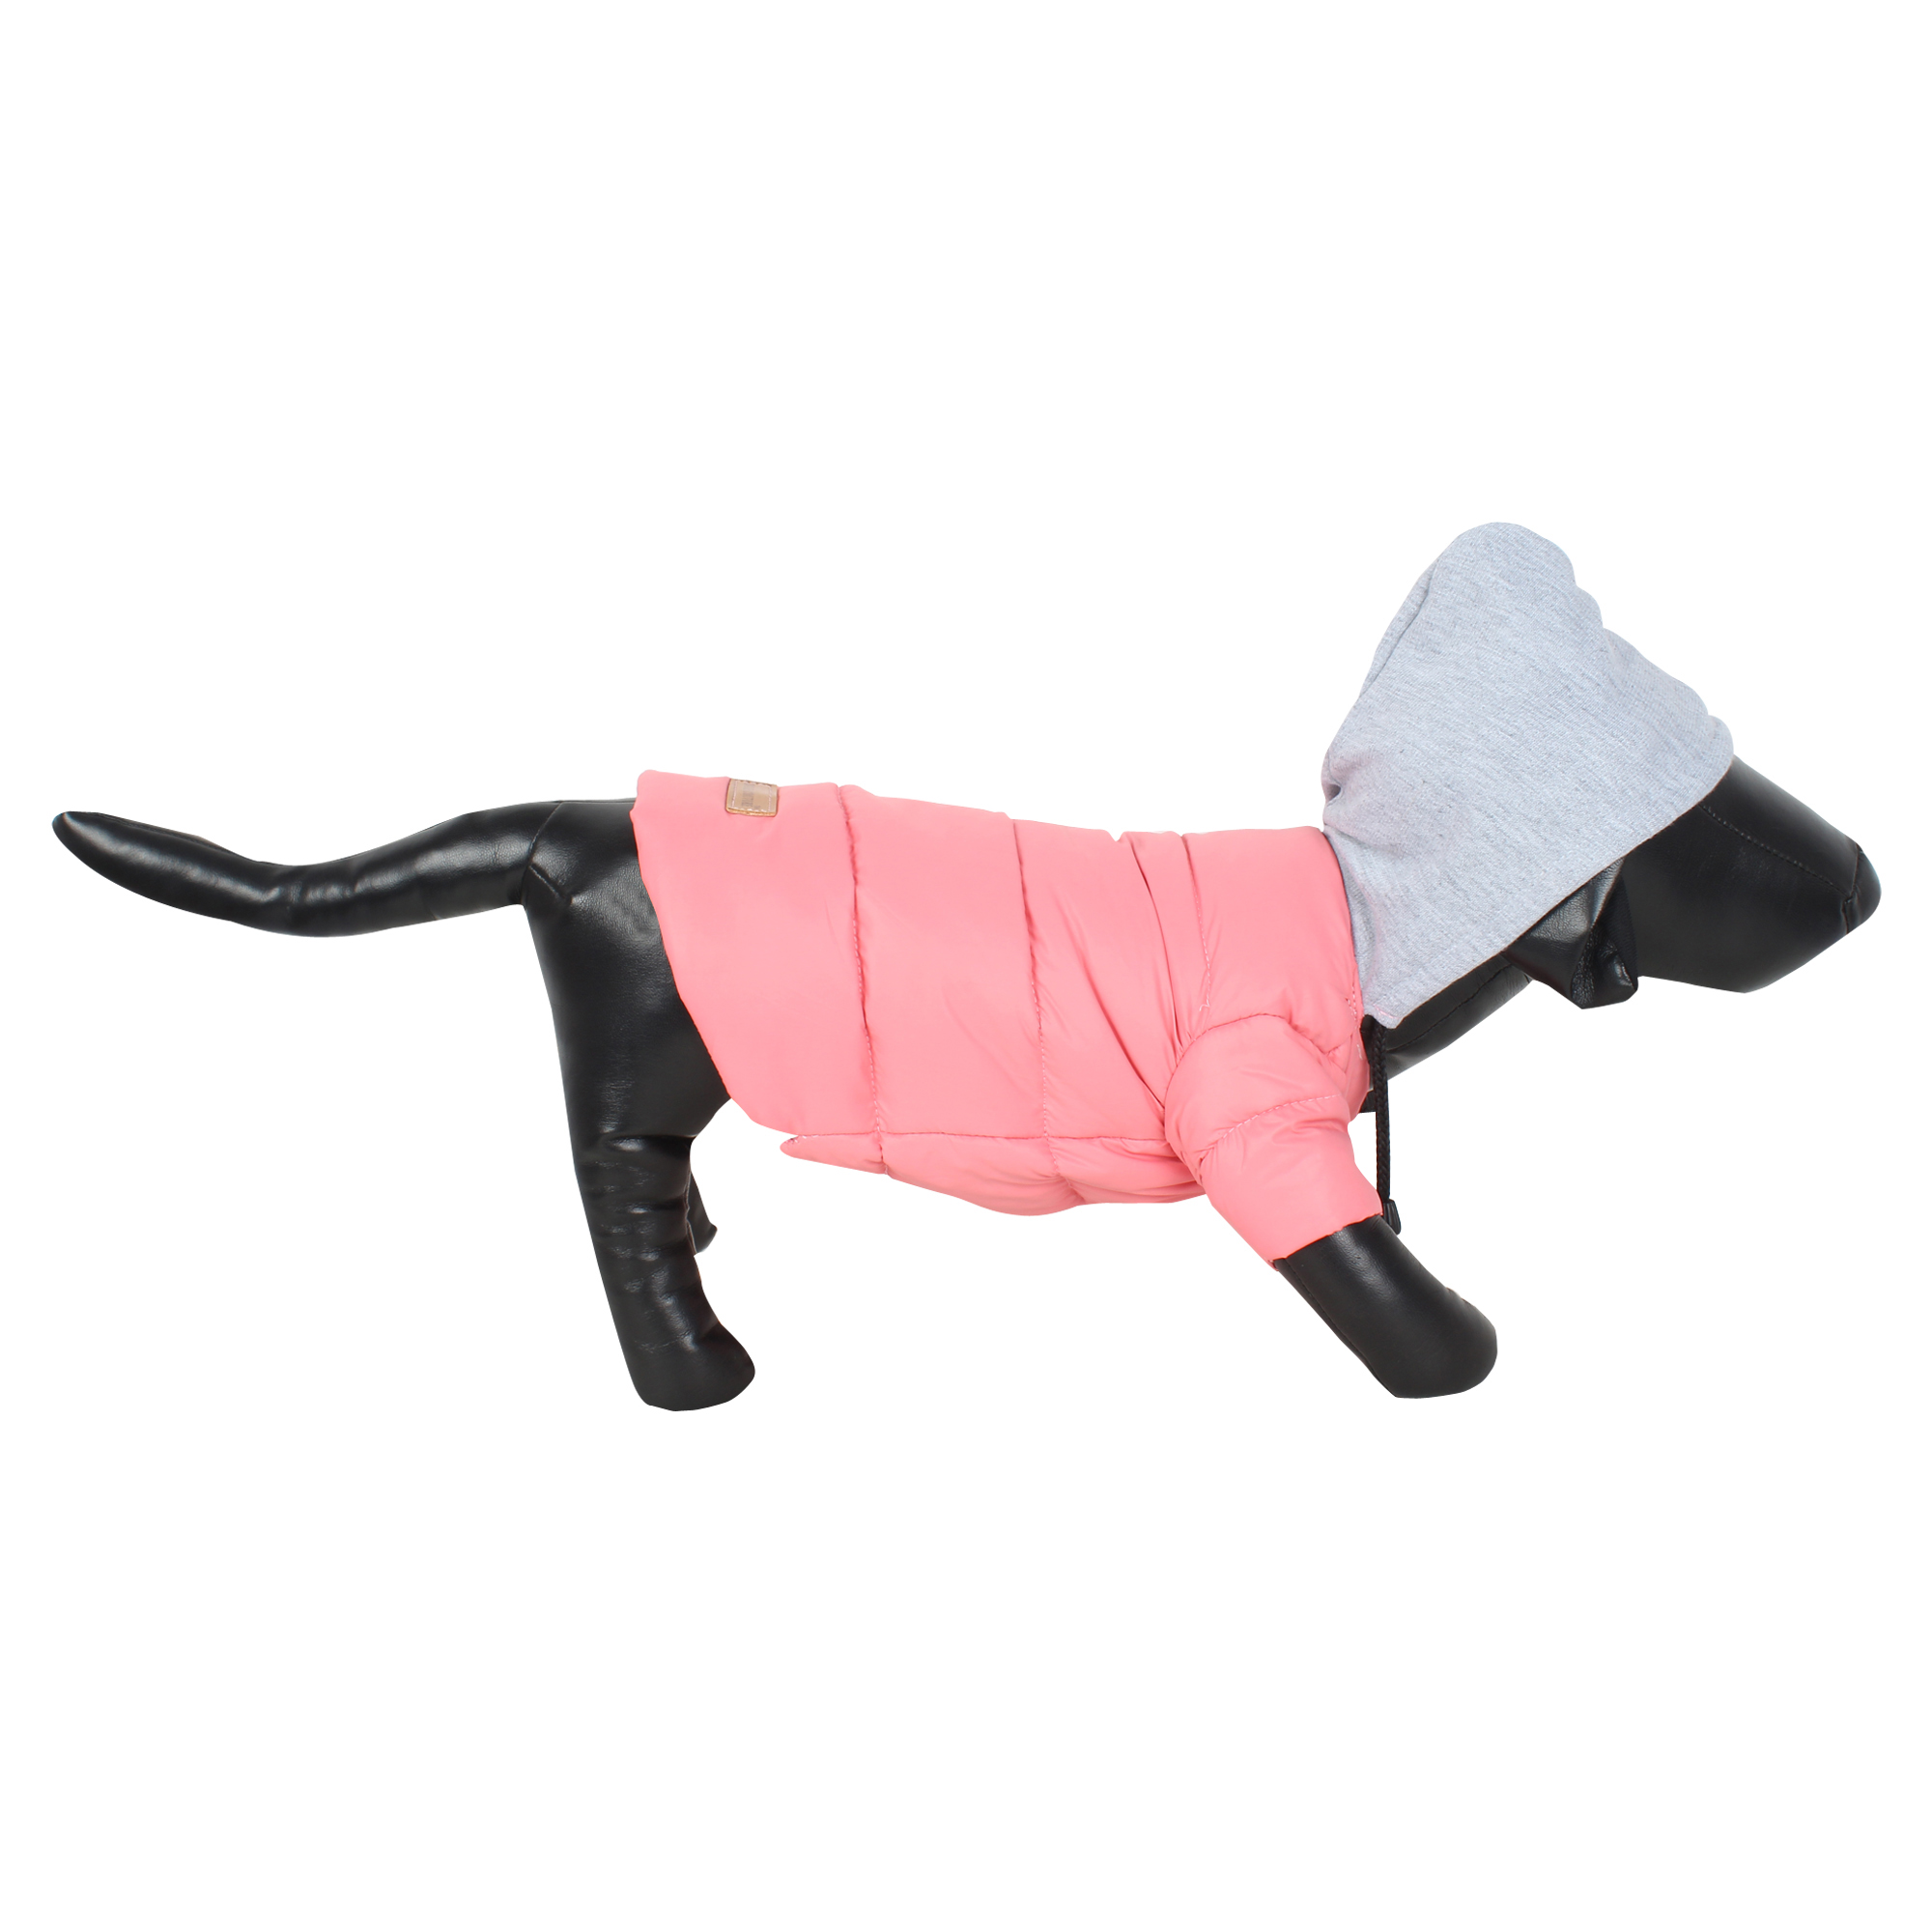 DOUGE COUTURE DOG PUFF HOODIE WARM WINTER JACKT PINK COLOR